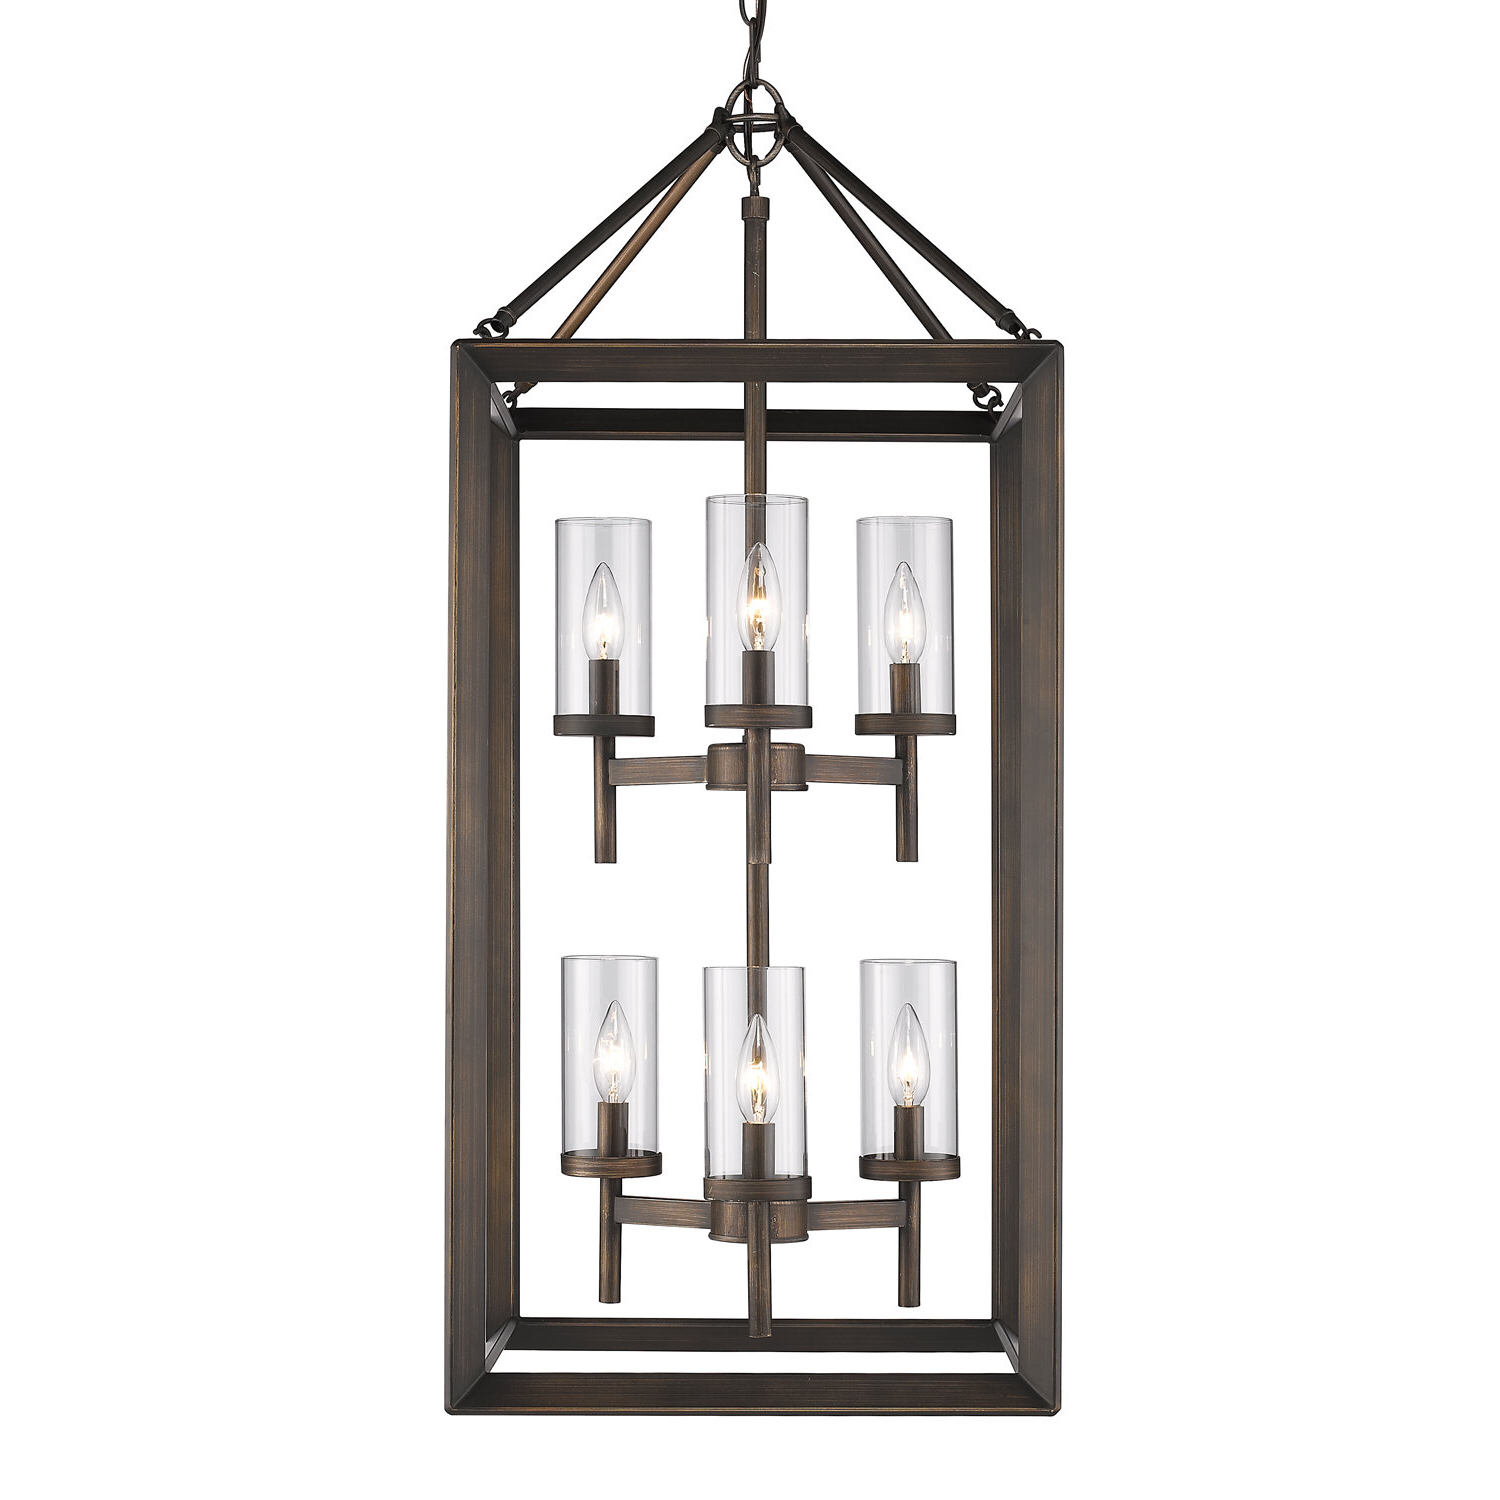 Three Posts Thorne 6 Light Lantern Pendant & Reviews Pertaining To Most Up To Date Thorne 6 Light Lantern Square / Rectangle Pendants (View 17 of 20)